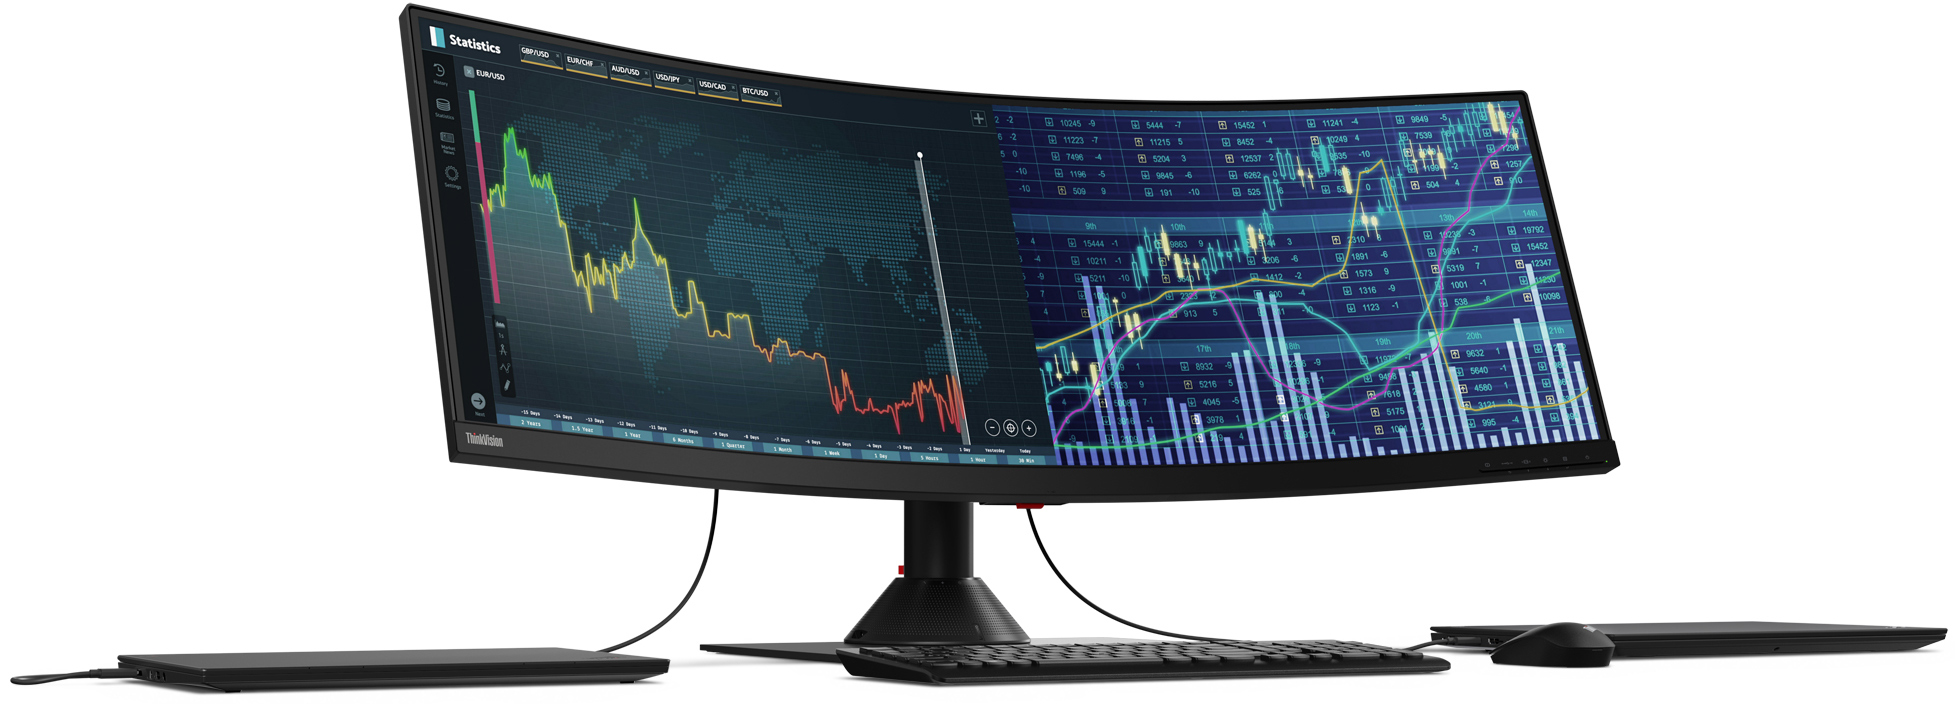 Lenovo at CES 2019: 43 4-Inch Curved Monitors for Gaming and